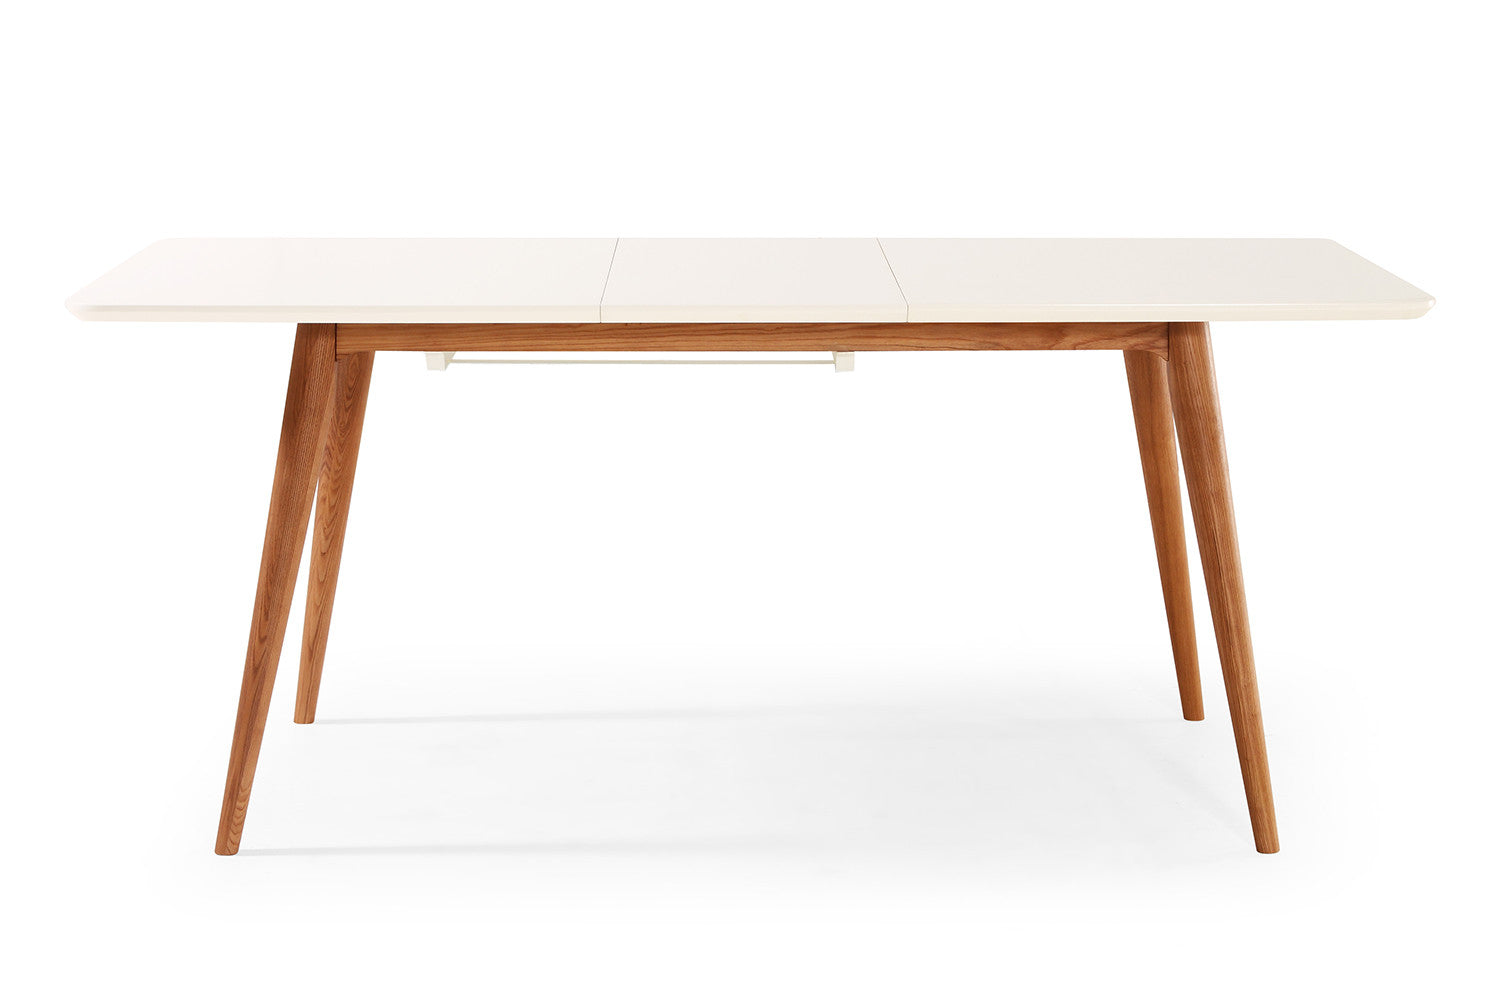 Table de salle manger extensible scandinave wyna dewarens for Table de salle a manger etroite